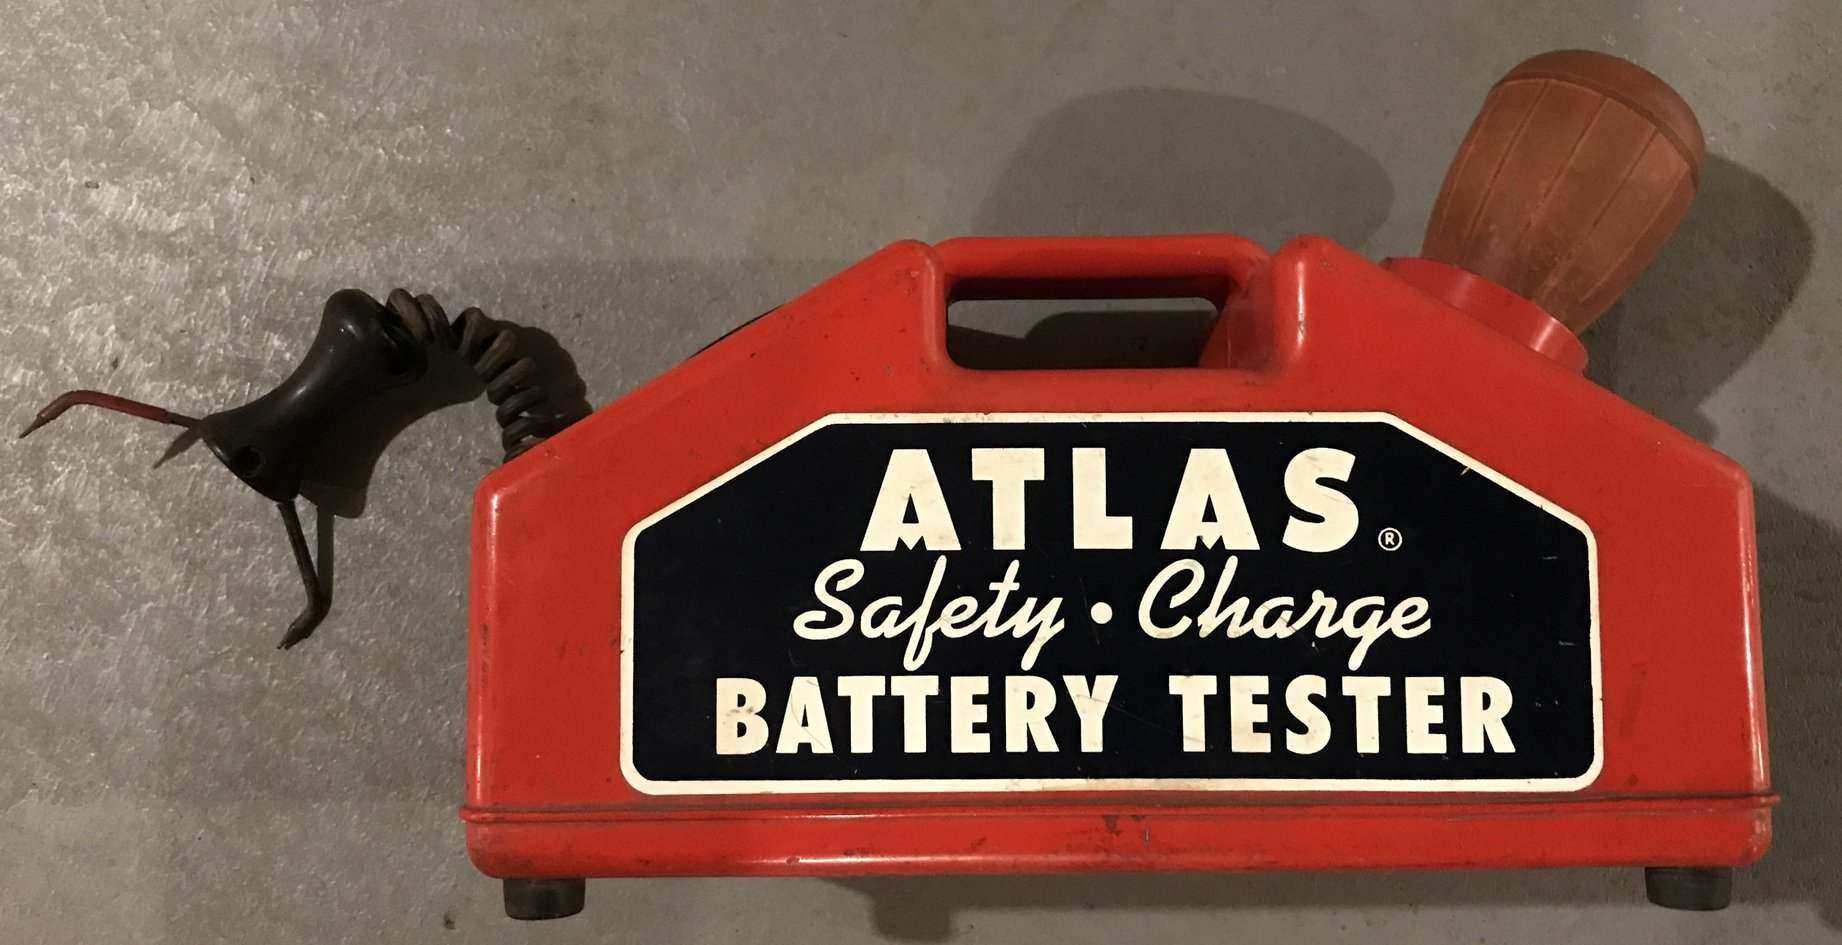 rsz_atlas_battery_caddy-1.jpg